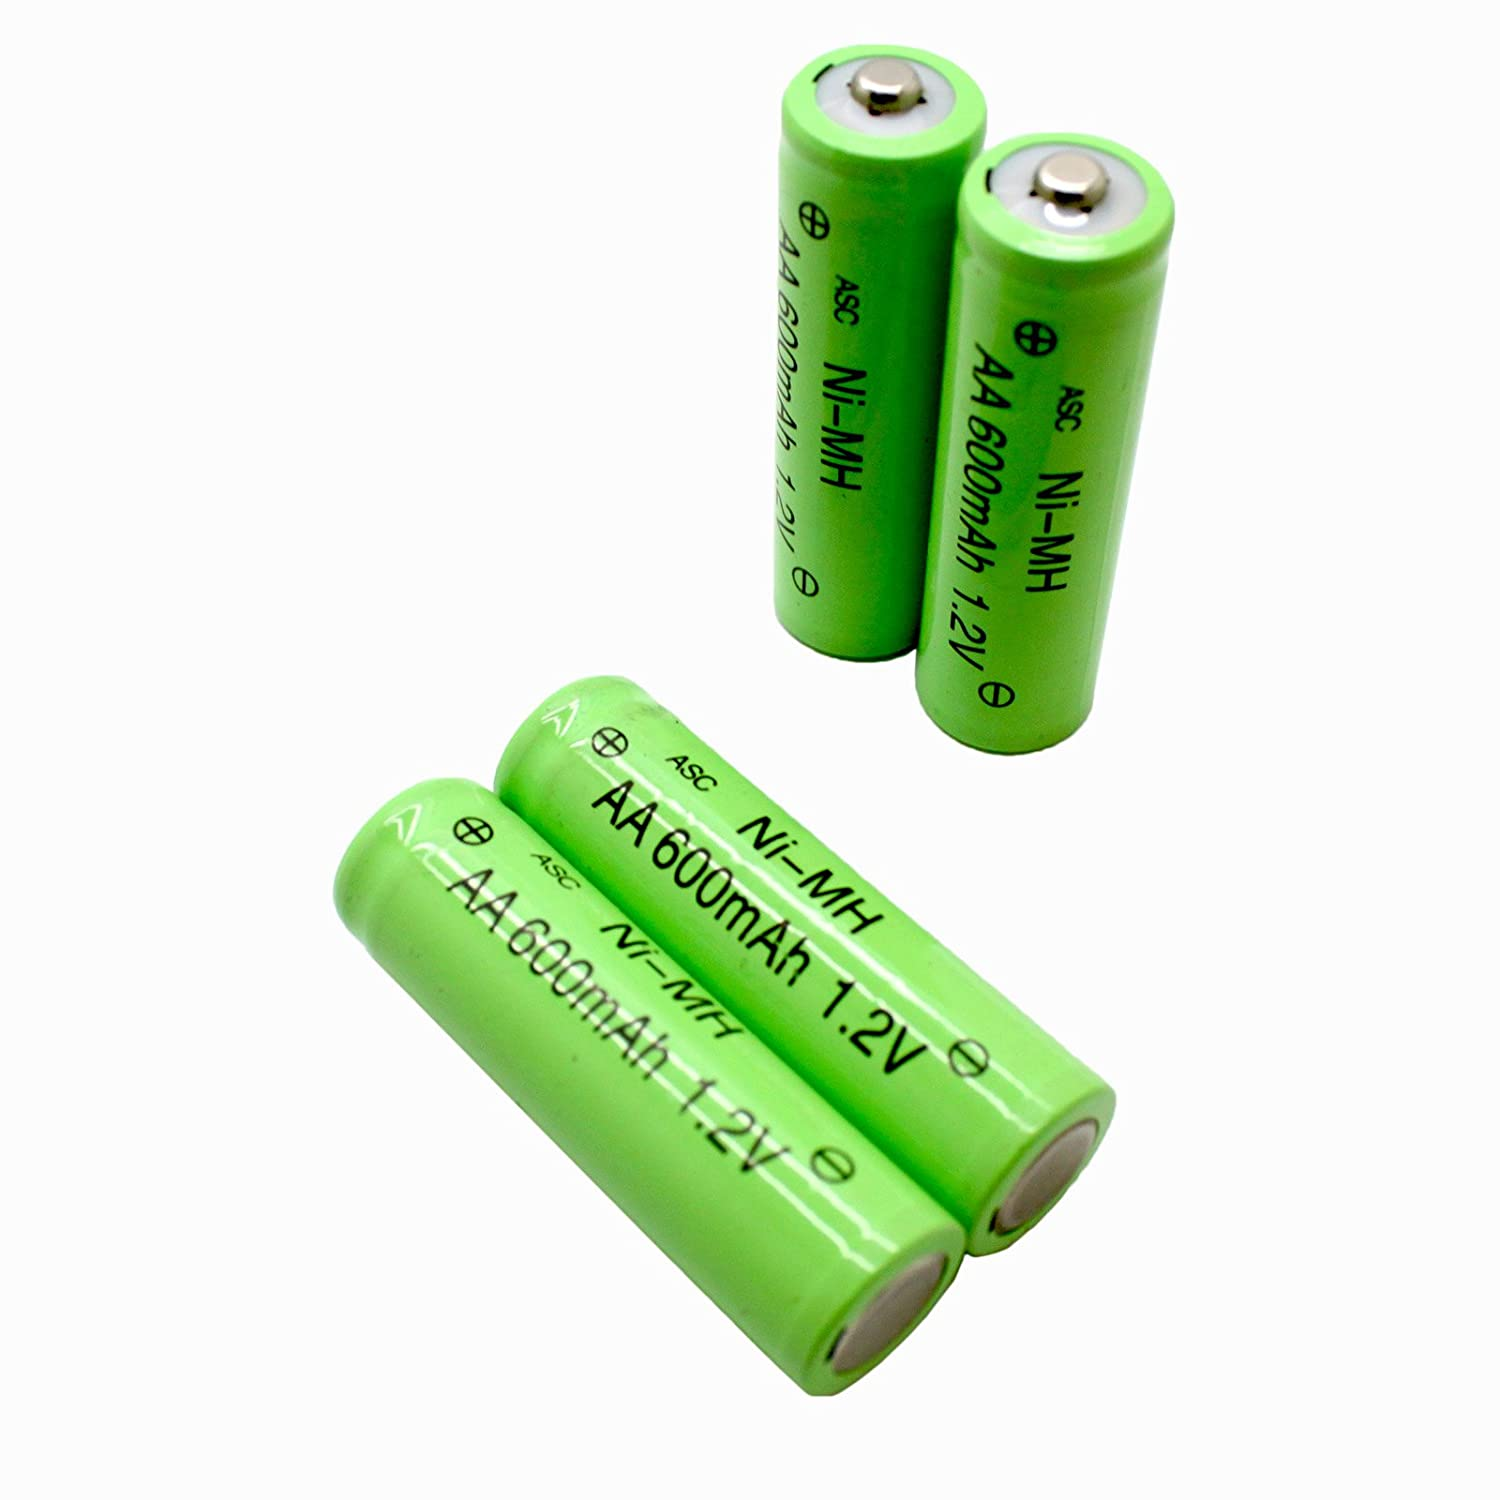 Asc Solar Light Aa Ni Mh 600mah Rechargable Batteries 200ma Hour 8211 12v Nicad Battery Charger Pack Of 12 Garden Outdoor